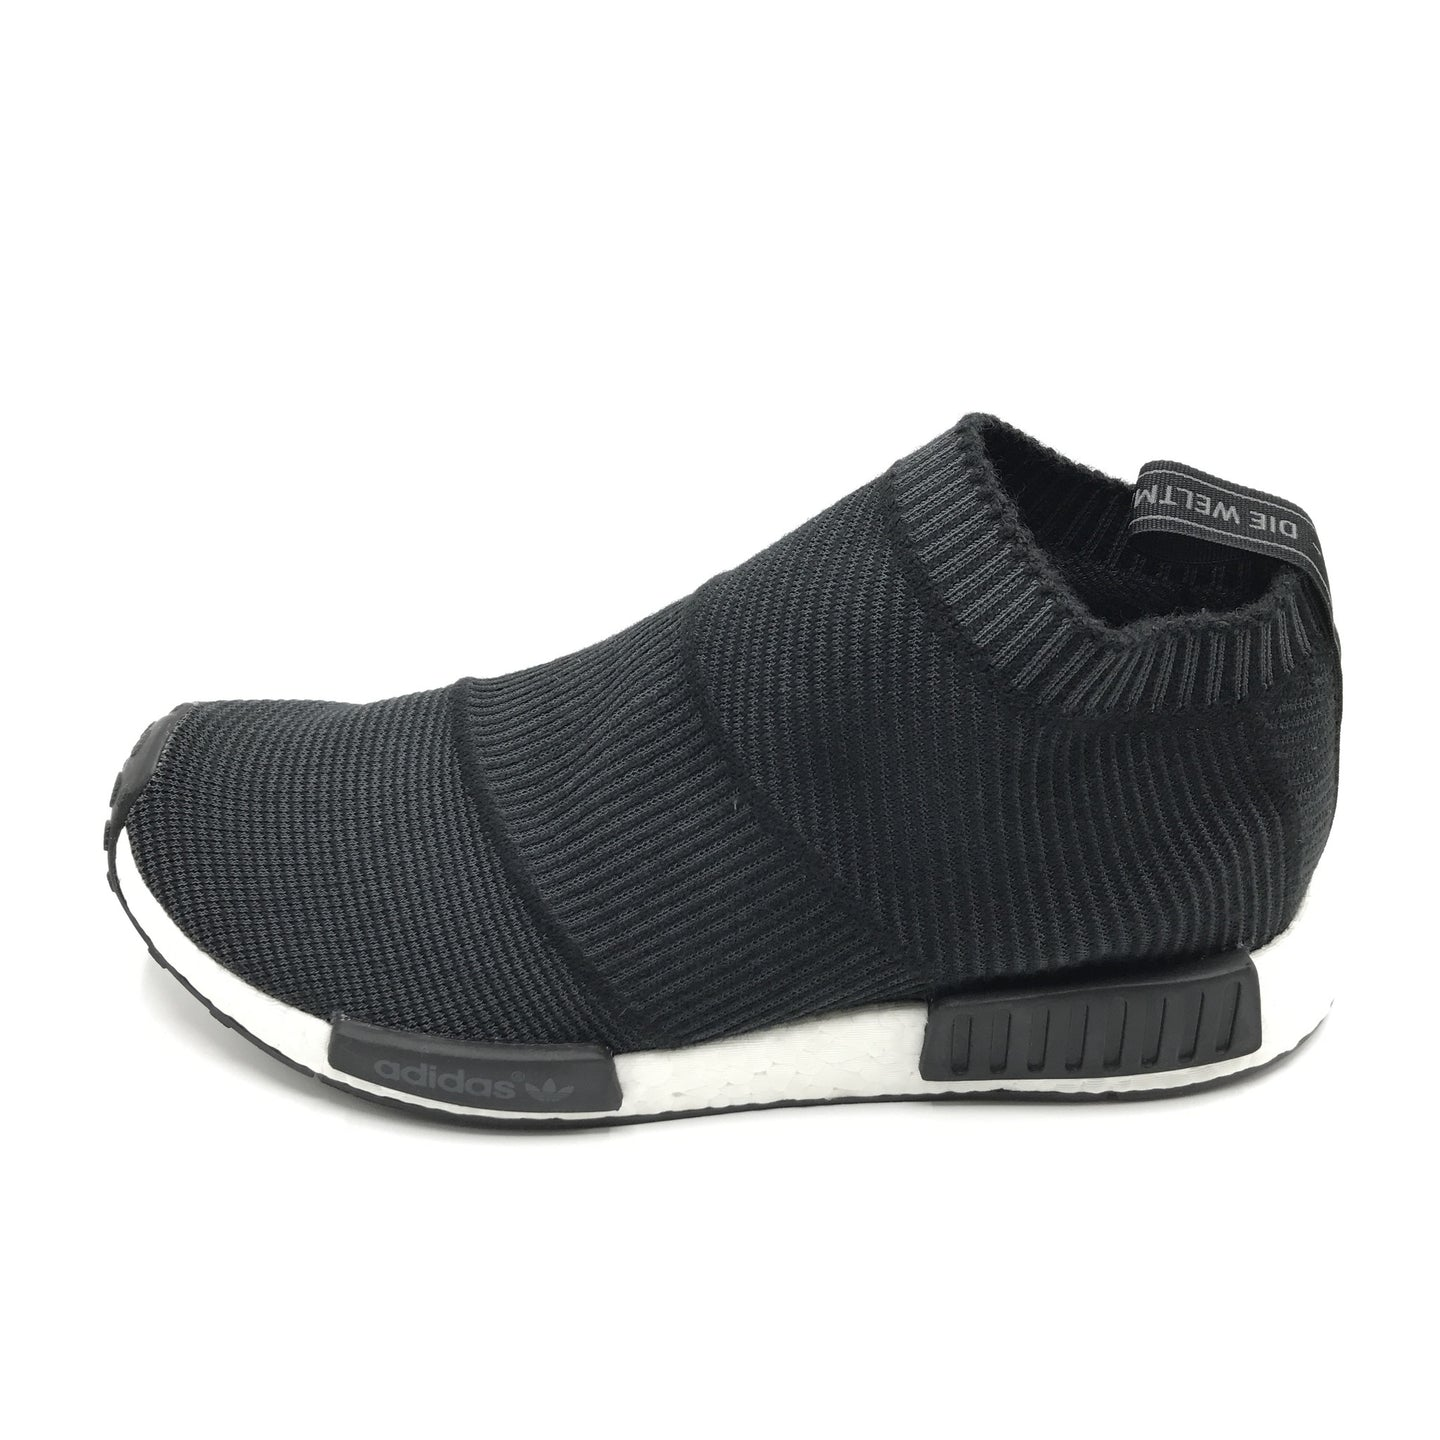 NMD_CS1 PK -Winter Wool